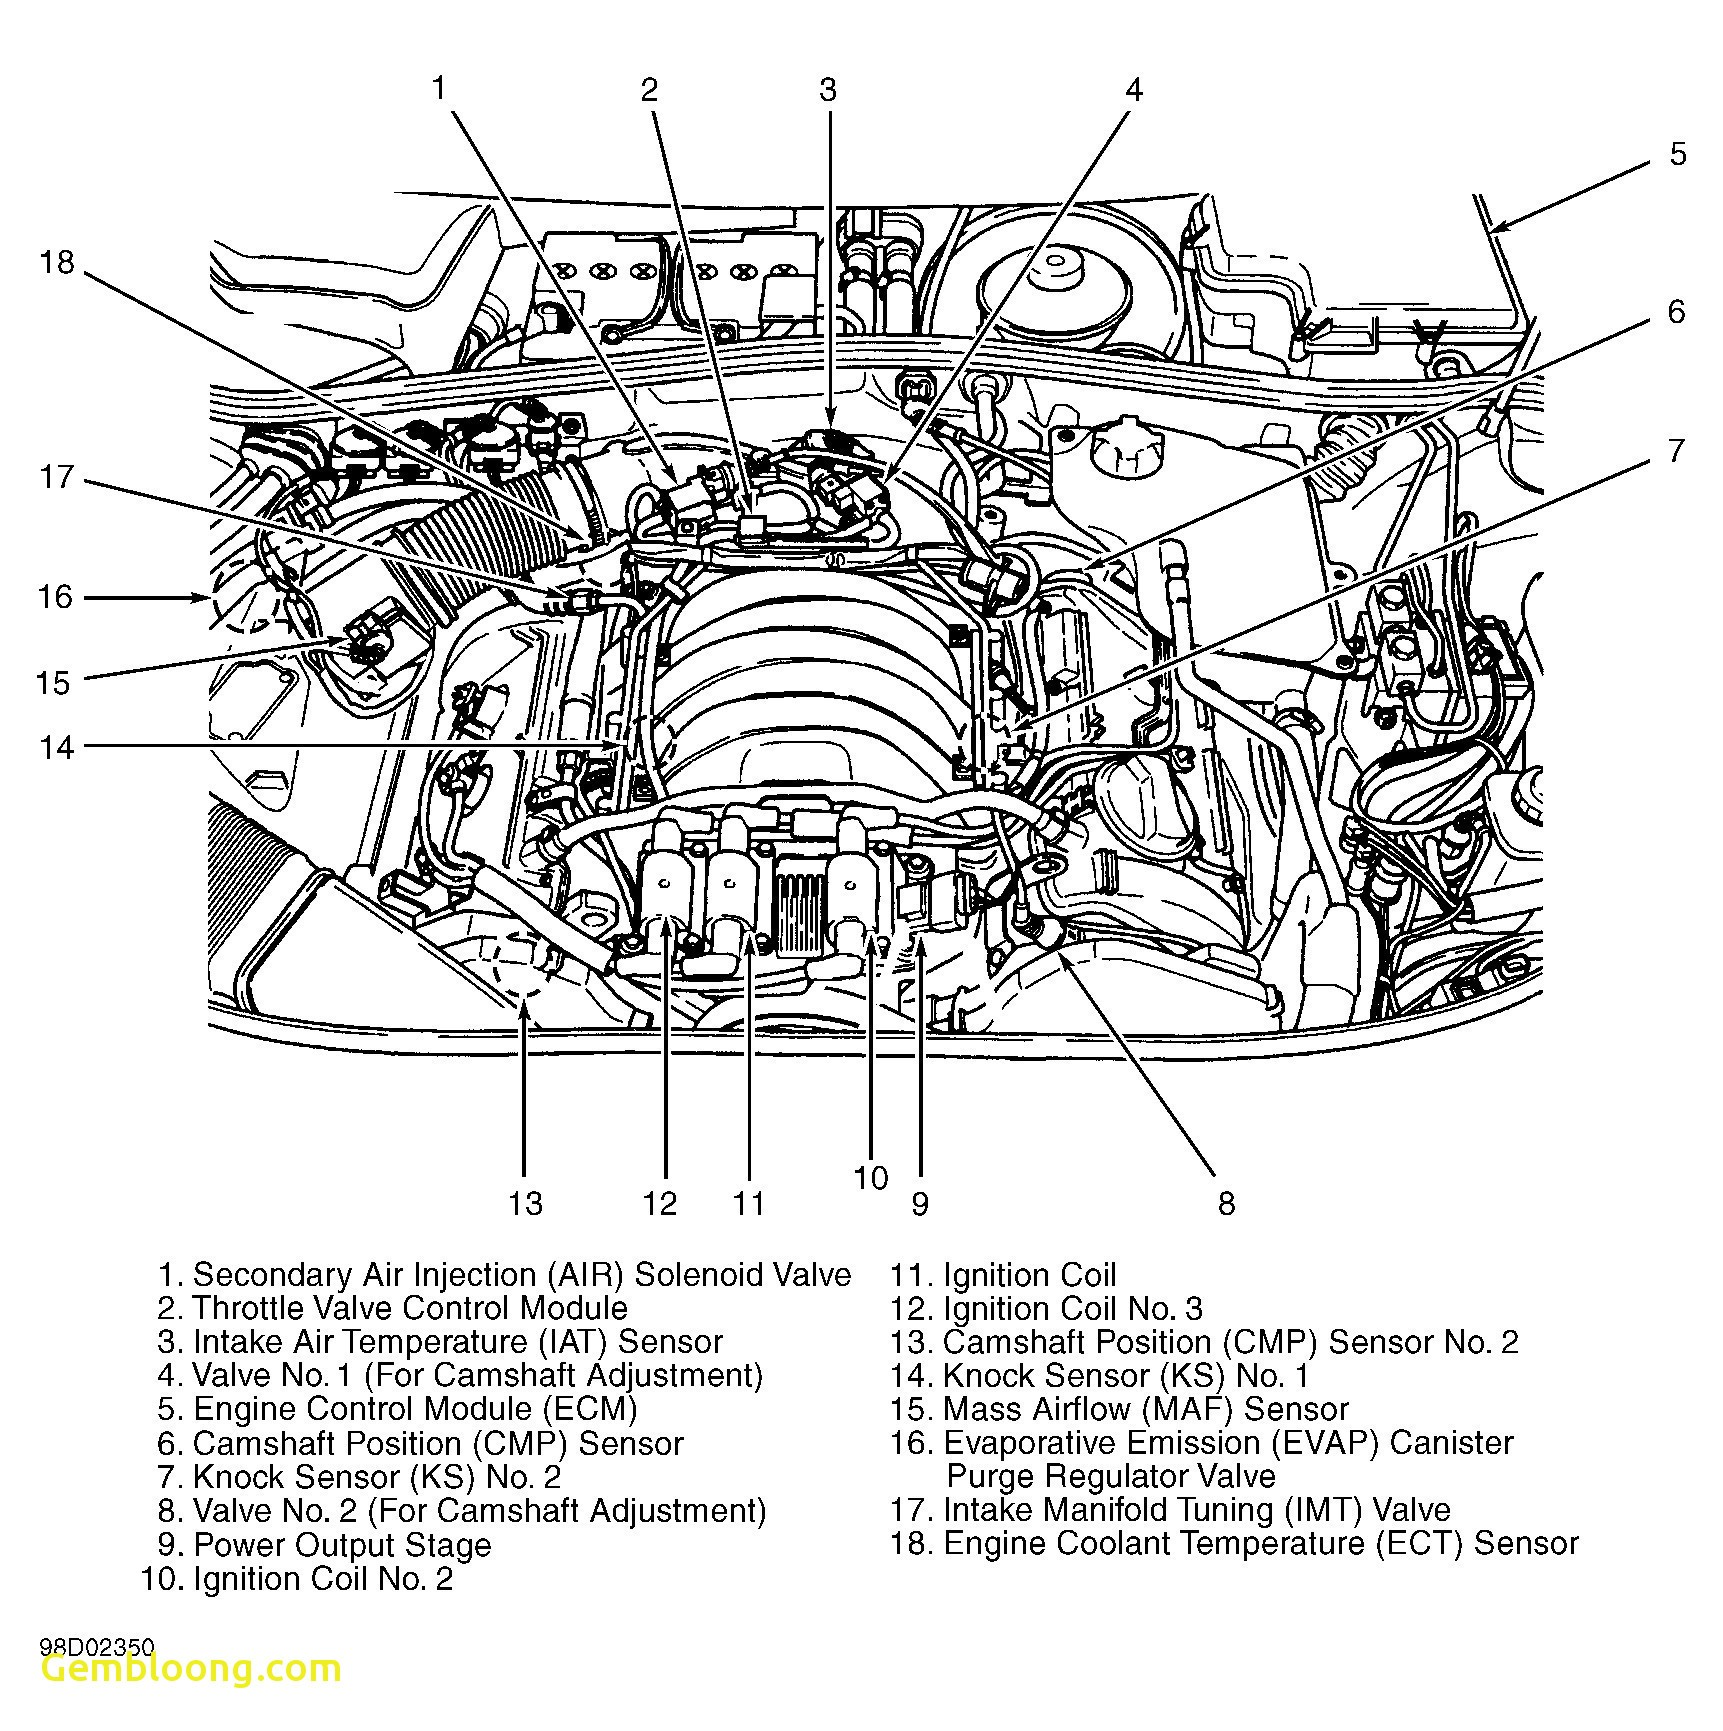 2001 Dodge Caravan Engine Diagram 33 Dodge 2002 Engine Diagram Wiring Diagram Paper Of 2001 Dodge Caravan Engine Diagram